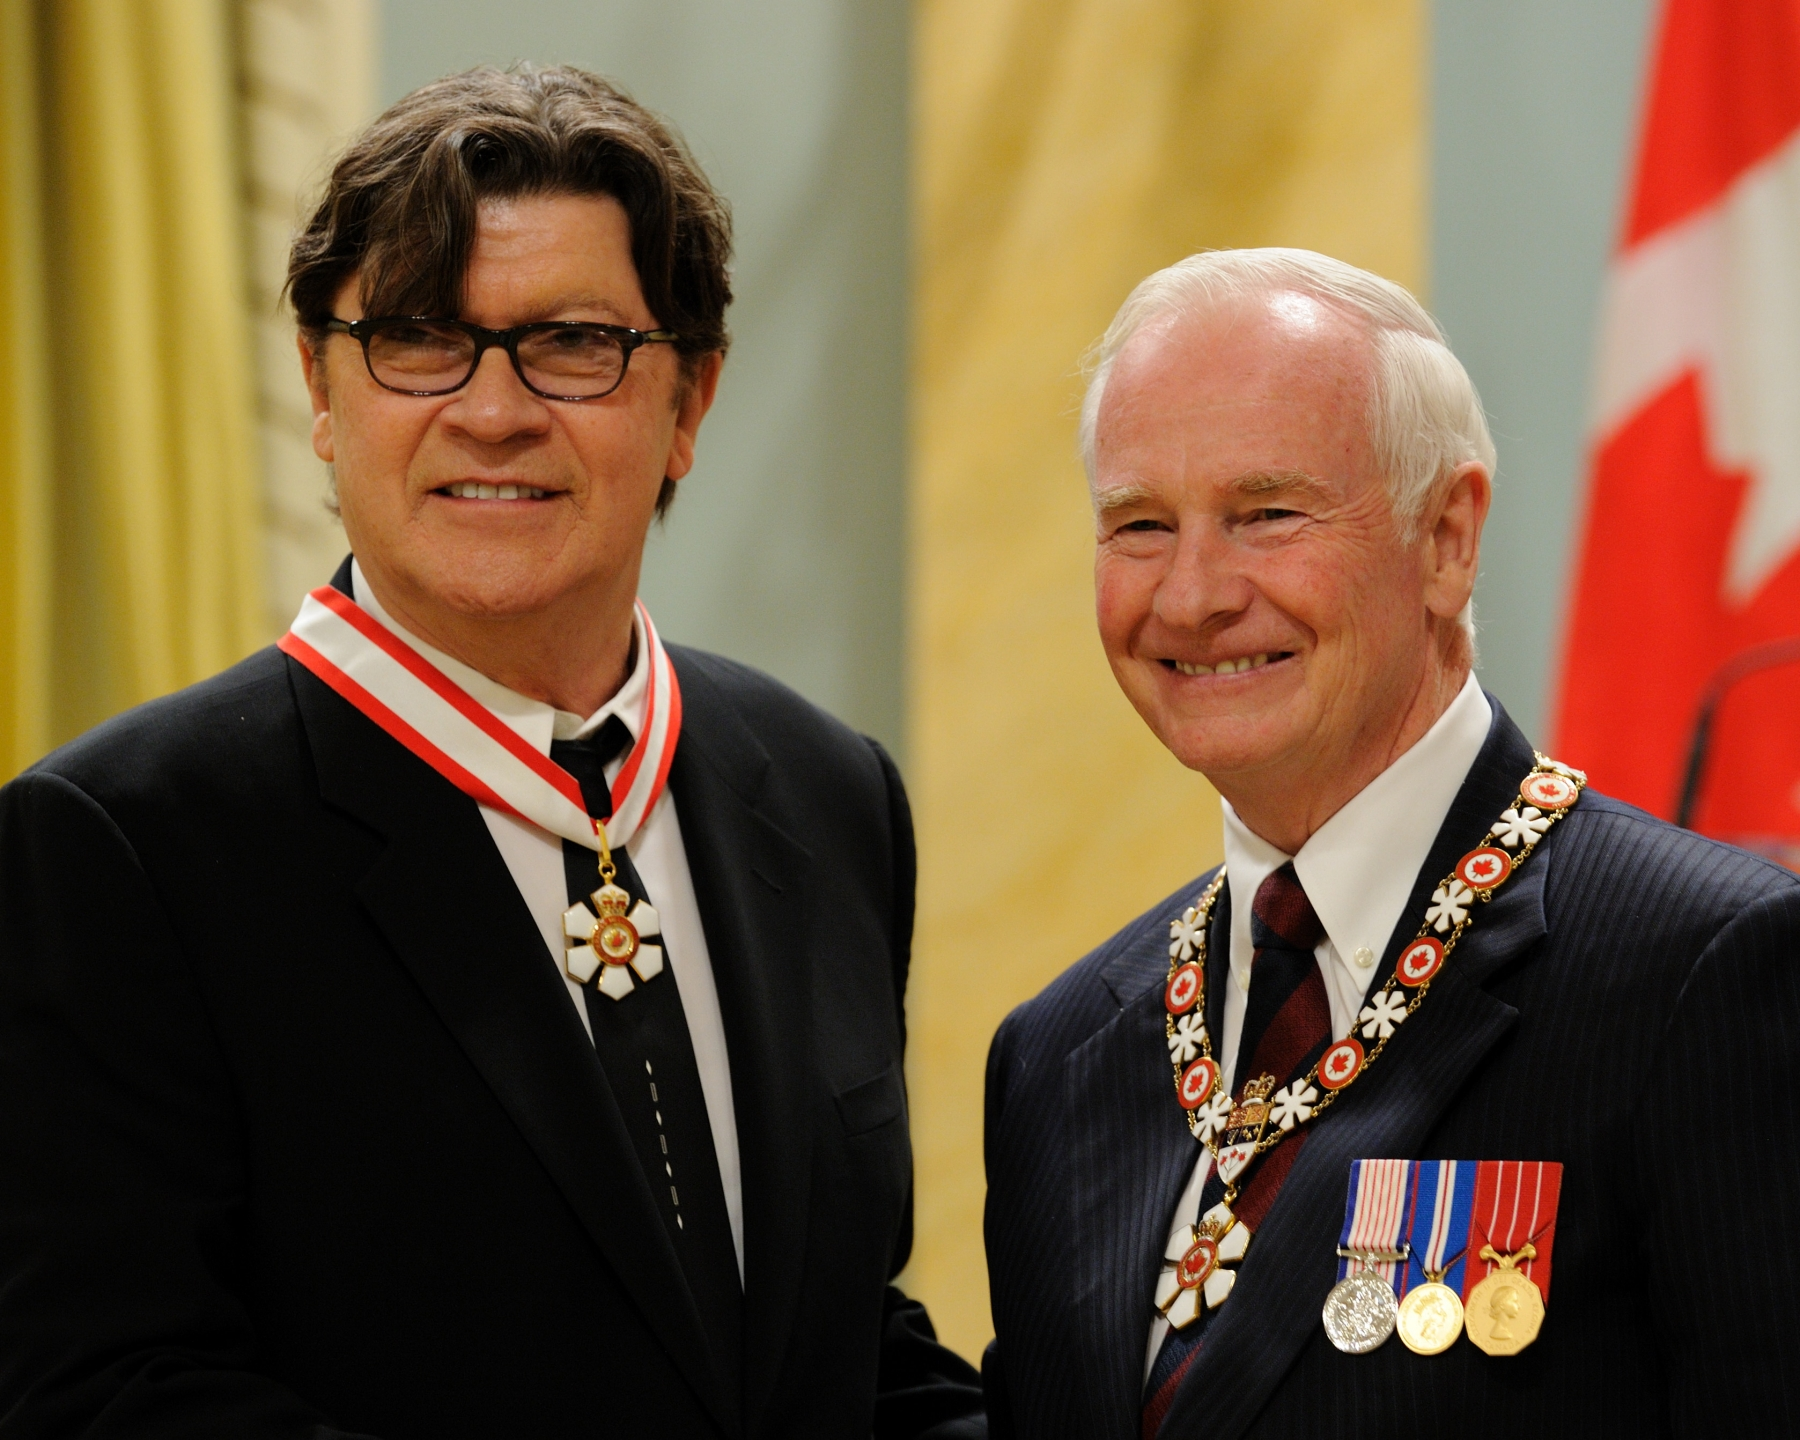 A rock music legend, Robbie Robertson (Los Angeles, California, U.S.A. and Toronto, Ontario) is one of Canada's most inspirational artists. He began his rise to stardom as a member of The Band, later embarking on a successful solo career that broadened to include film scores, acting, producing and musical collaborations. Through a fertile blending of diverse musical styles, he has introduced Native music to a much wider audience. His album Music for the Native Americans helped to showcase the work of other Native artists on the international music scene. By transcending cultural and geographical barriers, he stands as a model for both Aboriginal and non-Aboriginal artists alike.